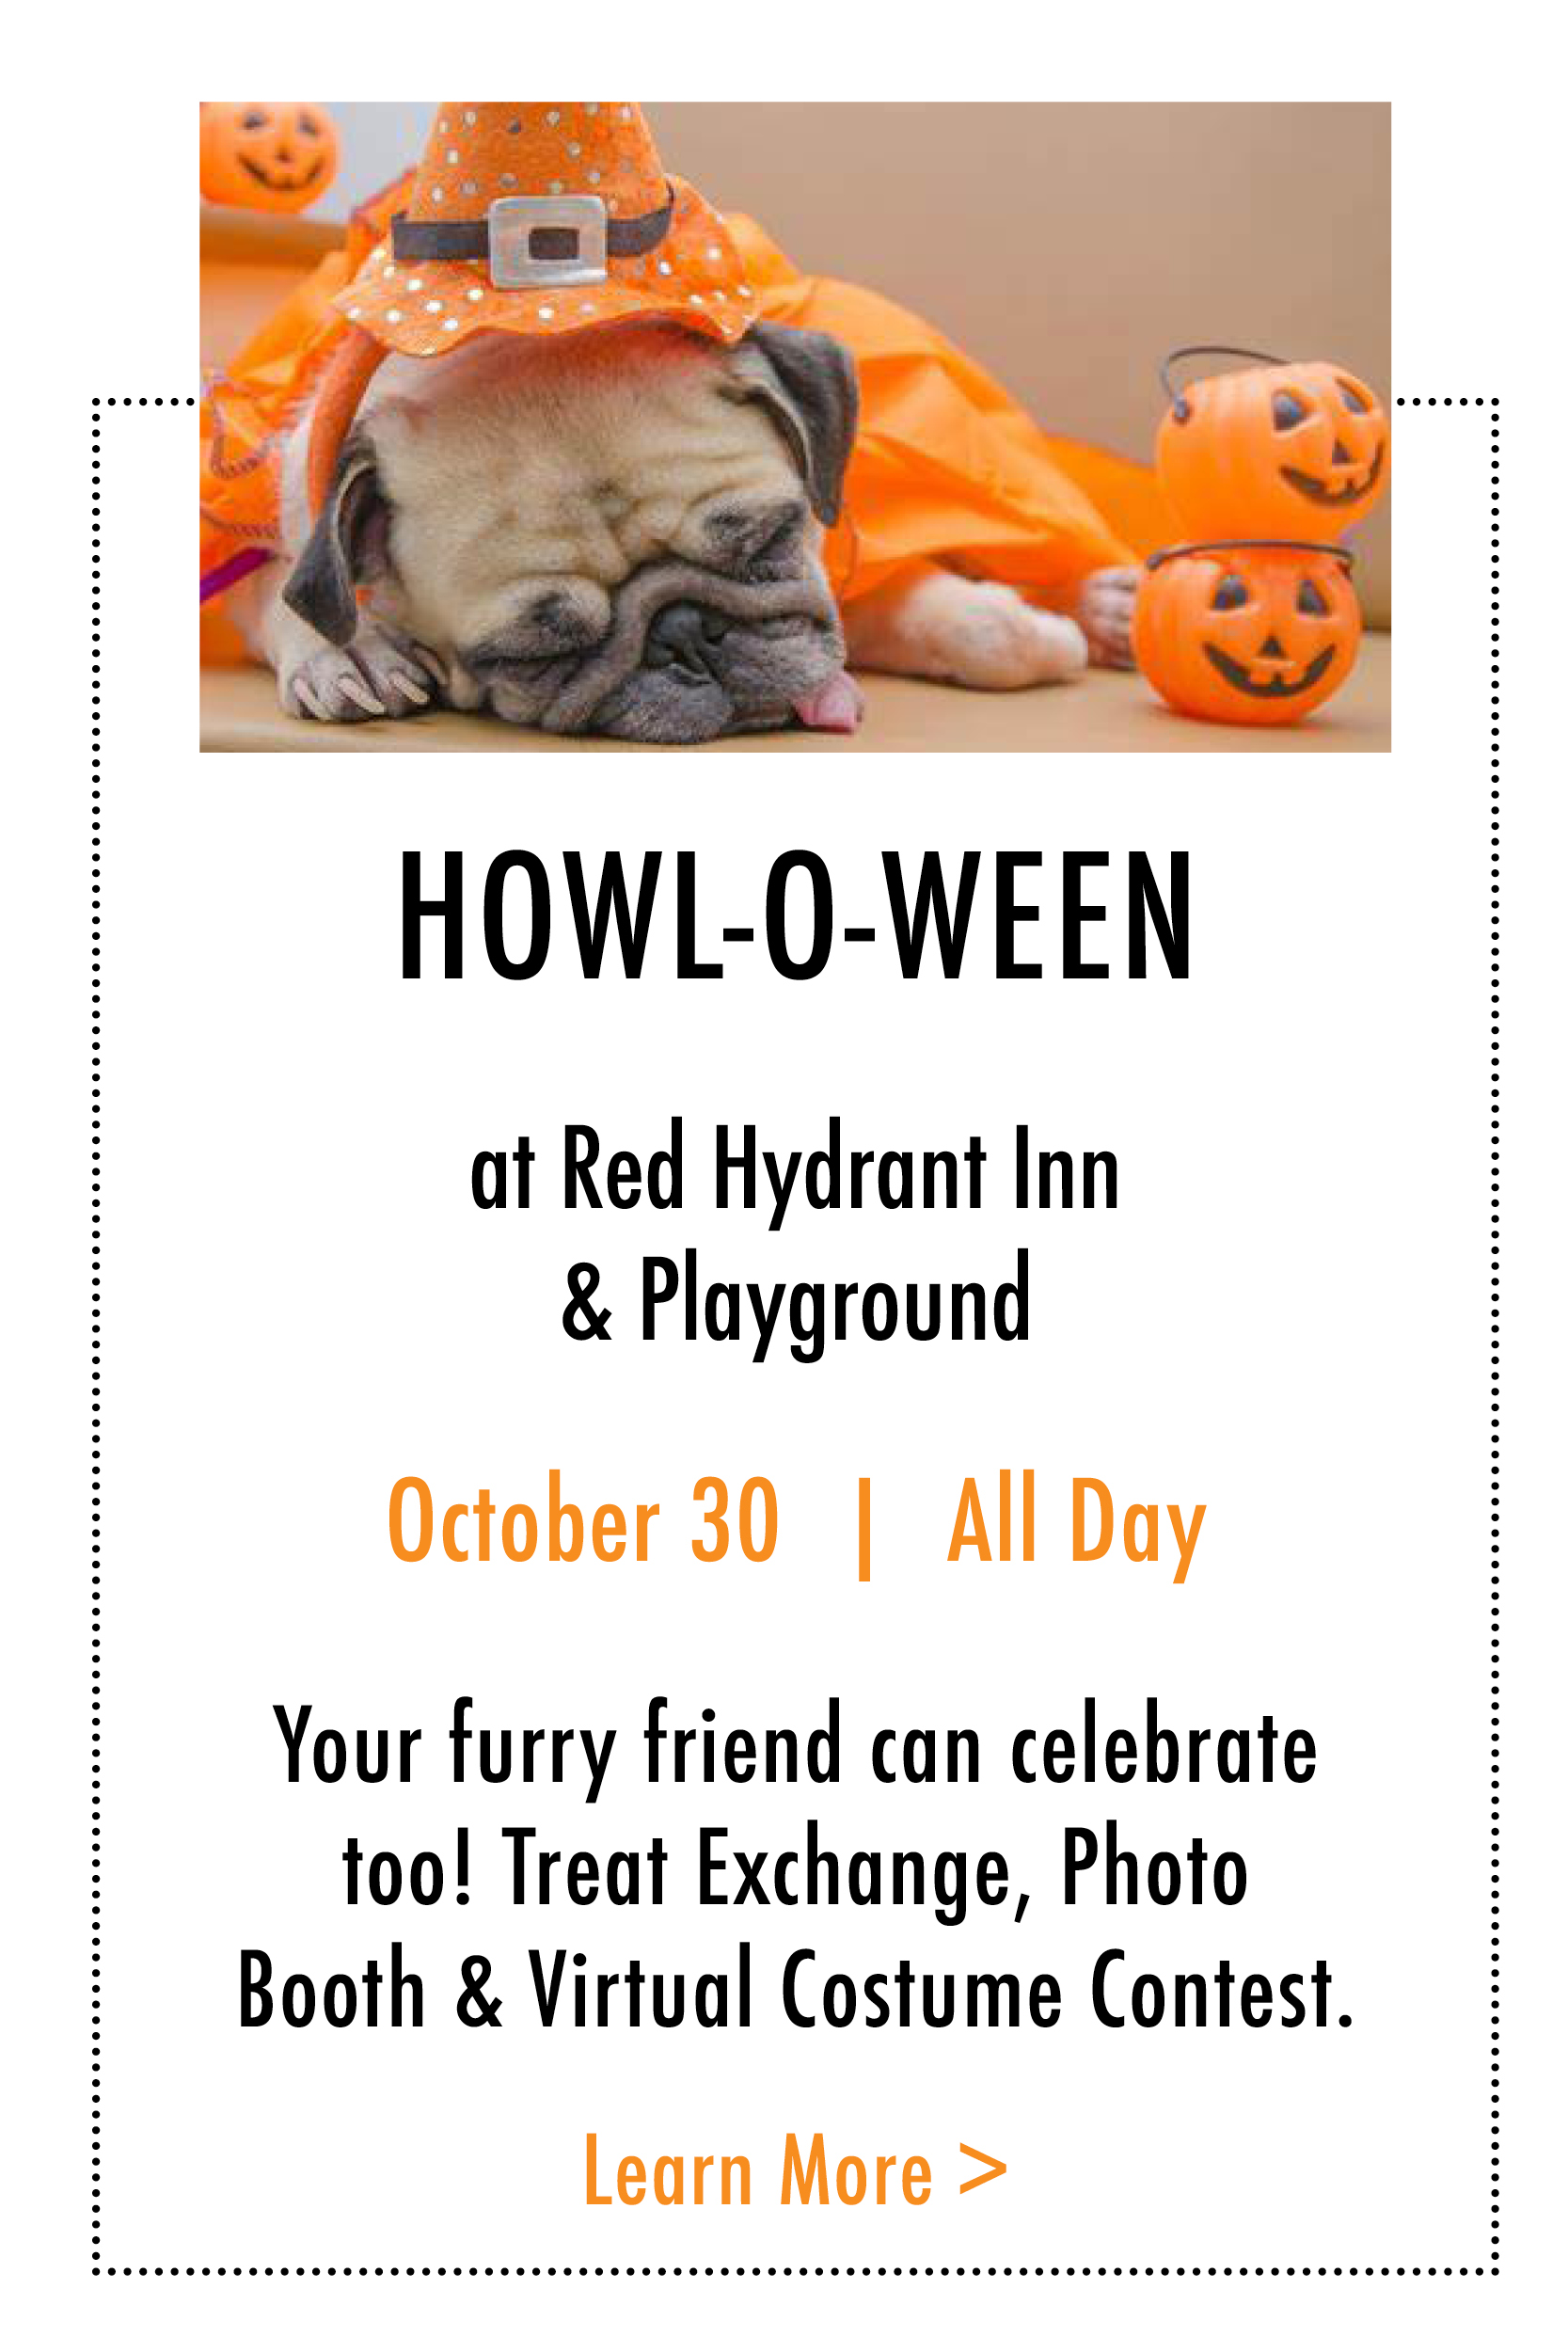 Howl-o-Ween at Red Hydrant Inn and Playground